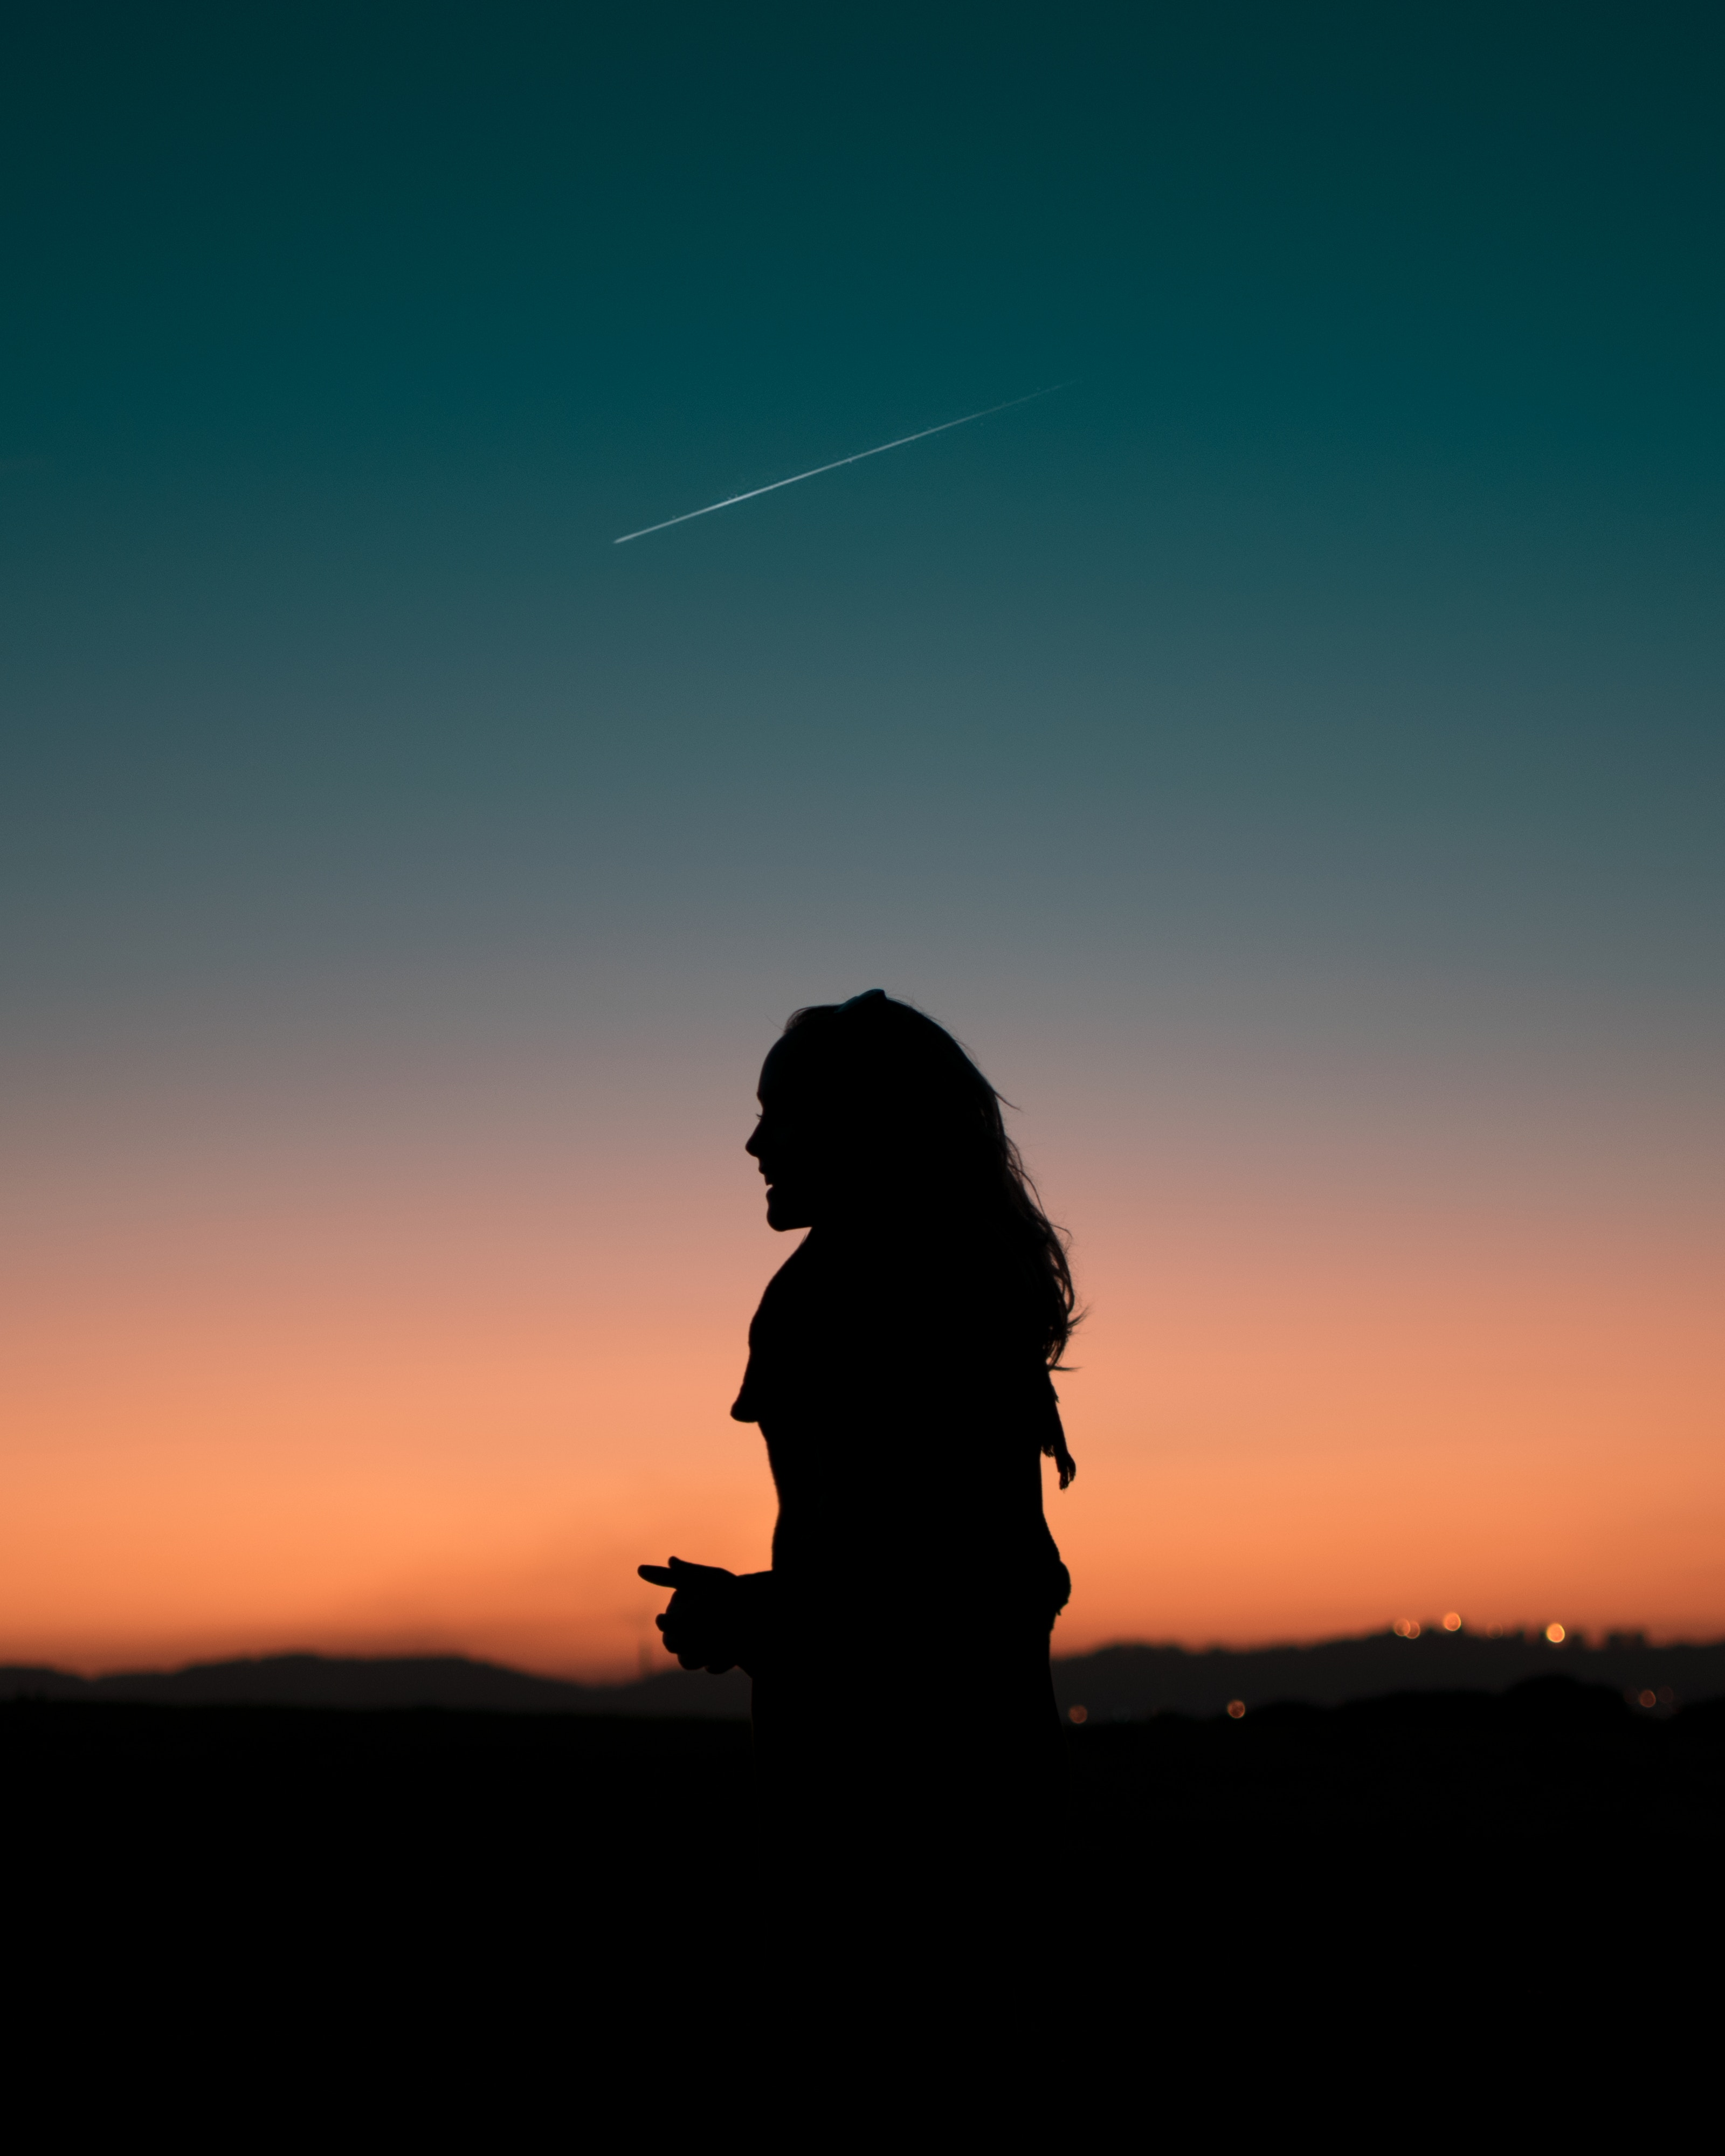 62285 free wallpaper 320x480 for phone, download images Night, Dark, Silhouette, Darkness, Girl 320x480 for mobile